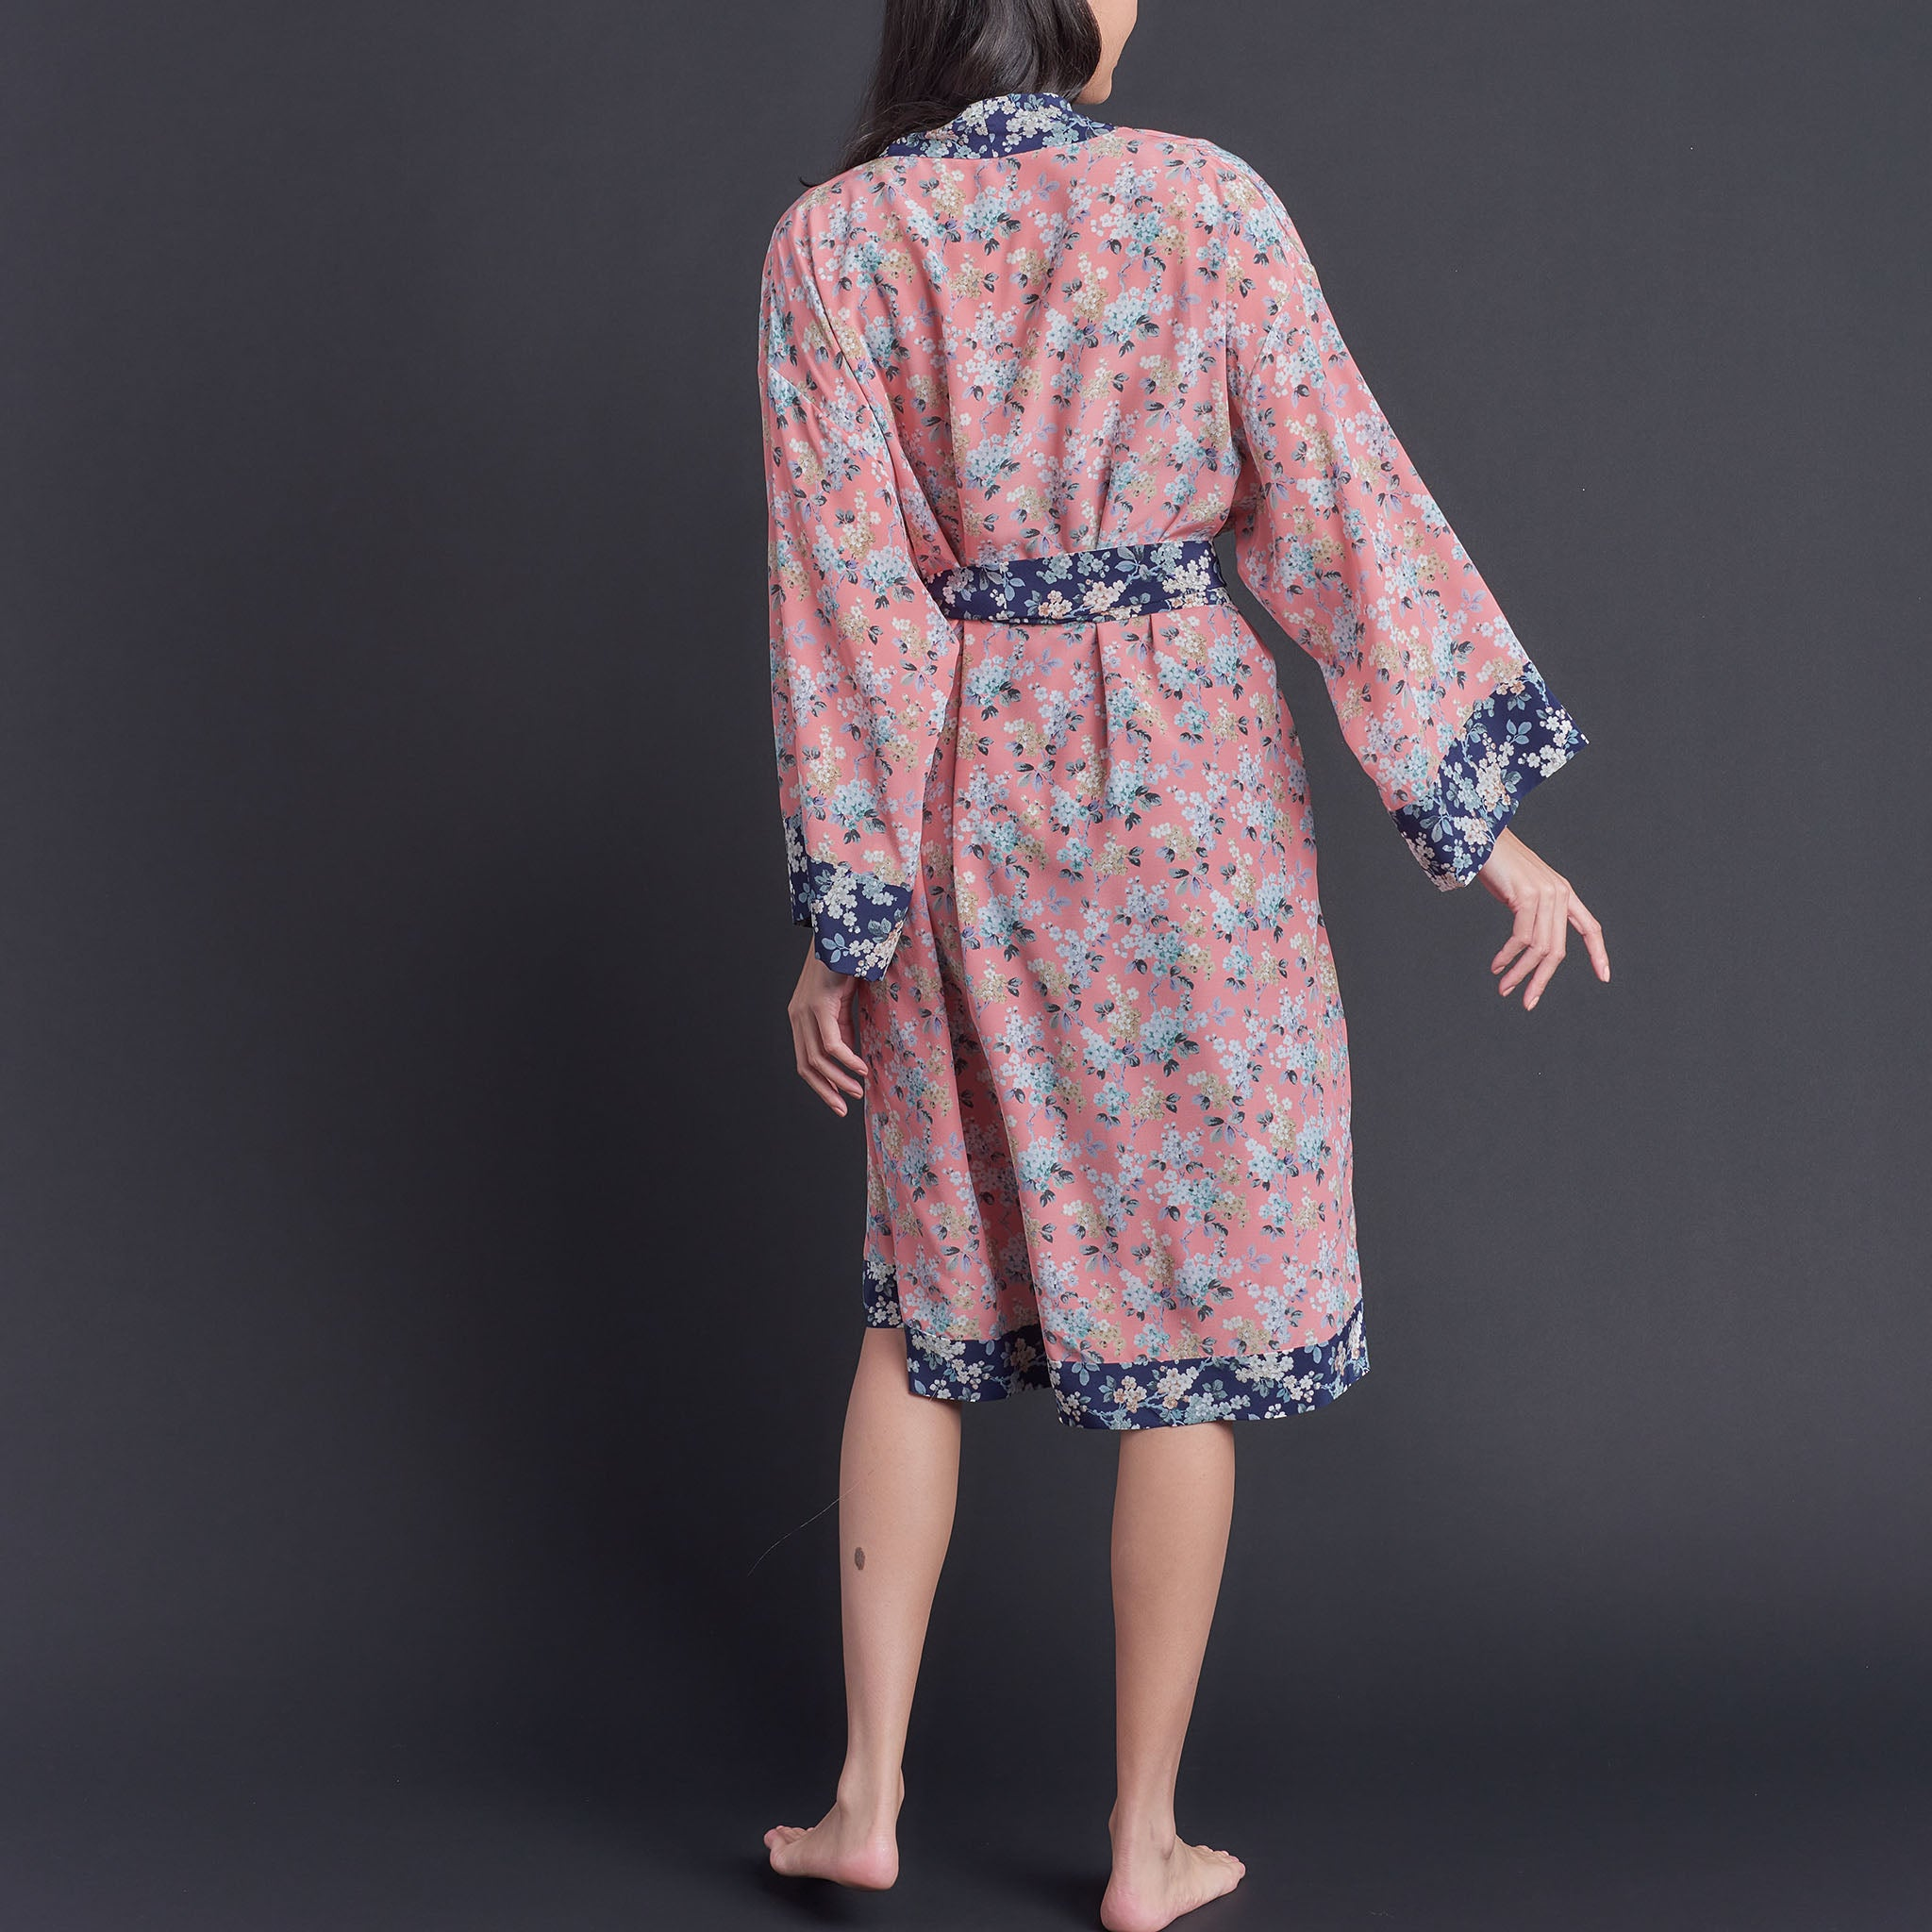 One of Kind Selene Dressing Gown in Pink Josephine Liberty Print Silk Crepe De Chine